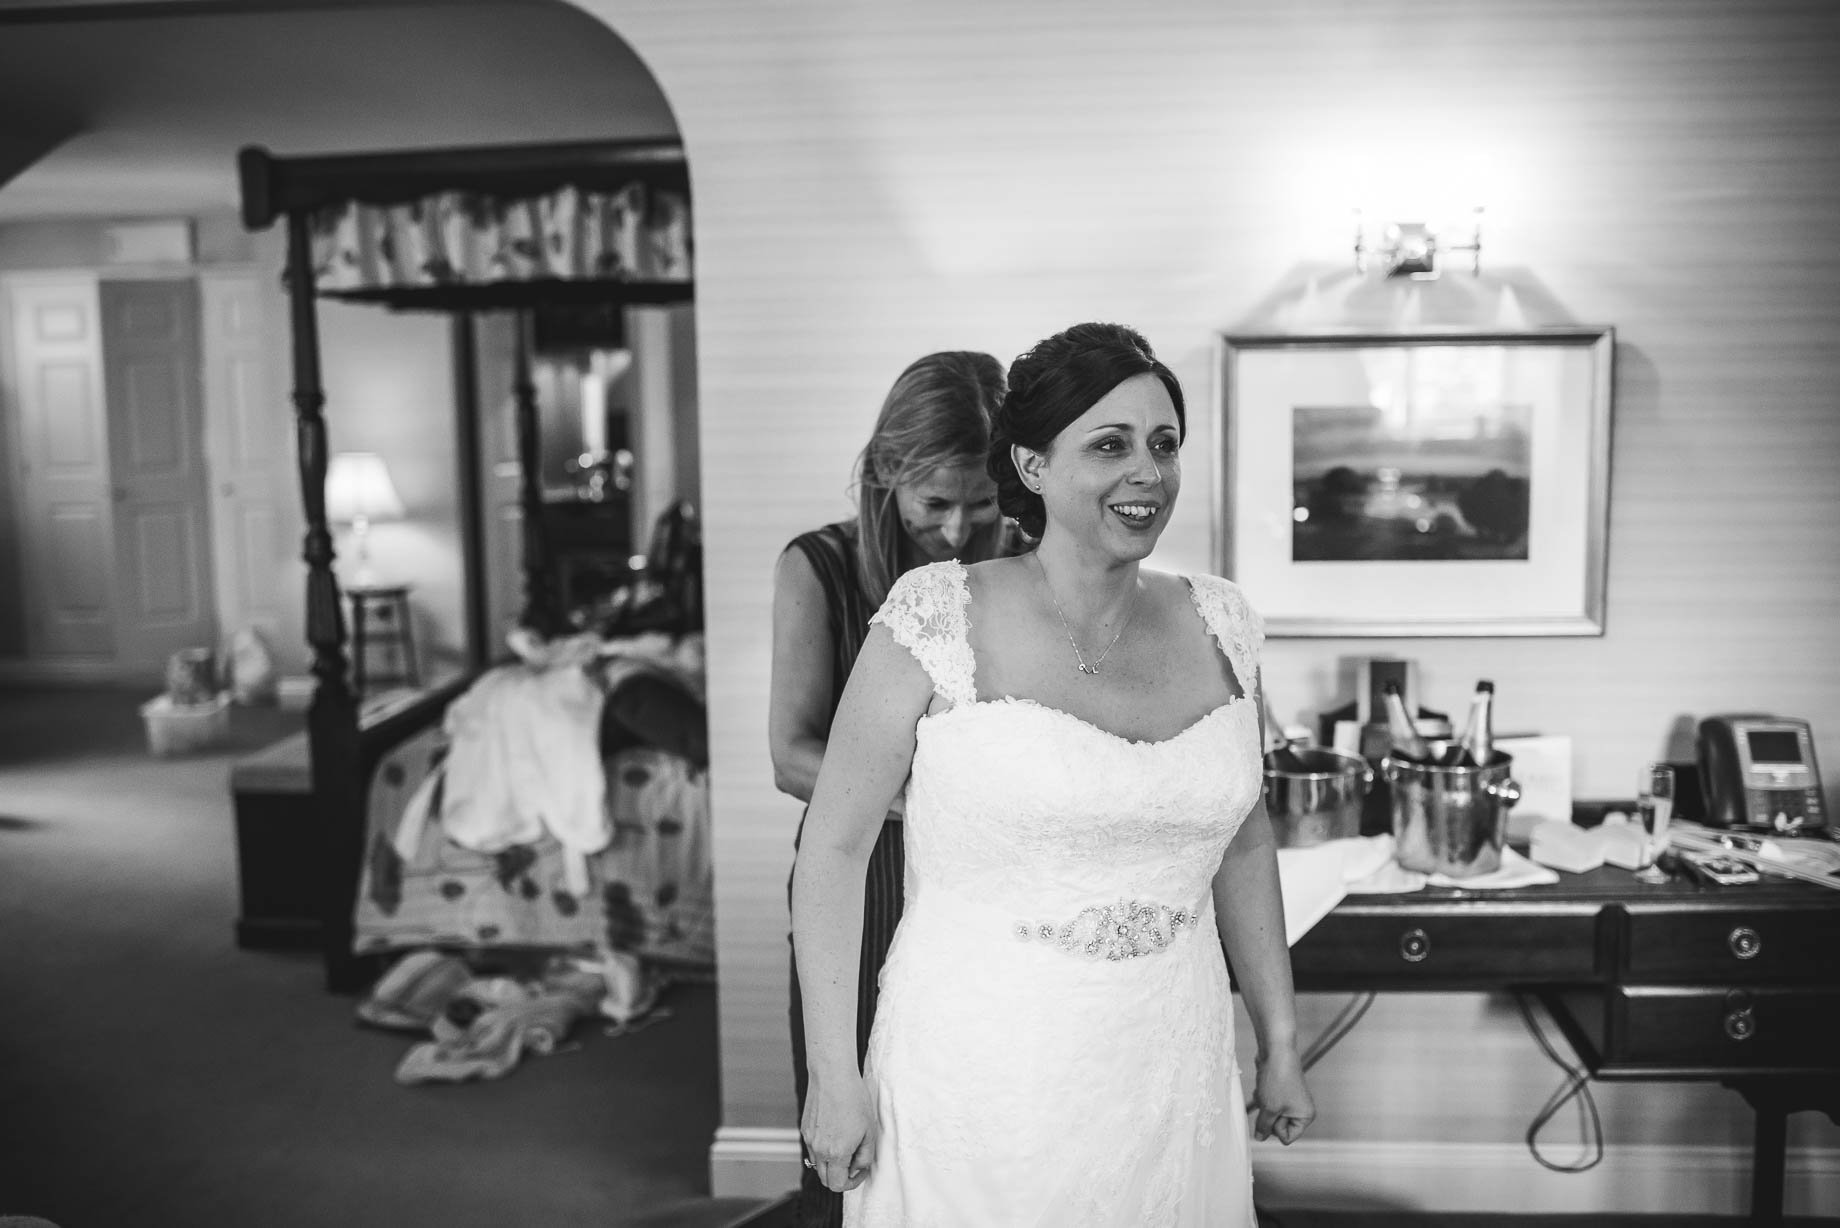 Luton Hoo wedding photography by Guy Collier Photography - Lauren and Gem (42 of 178)